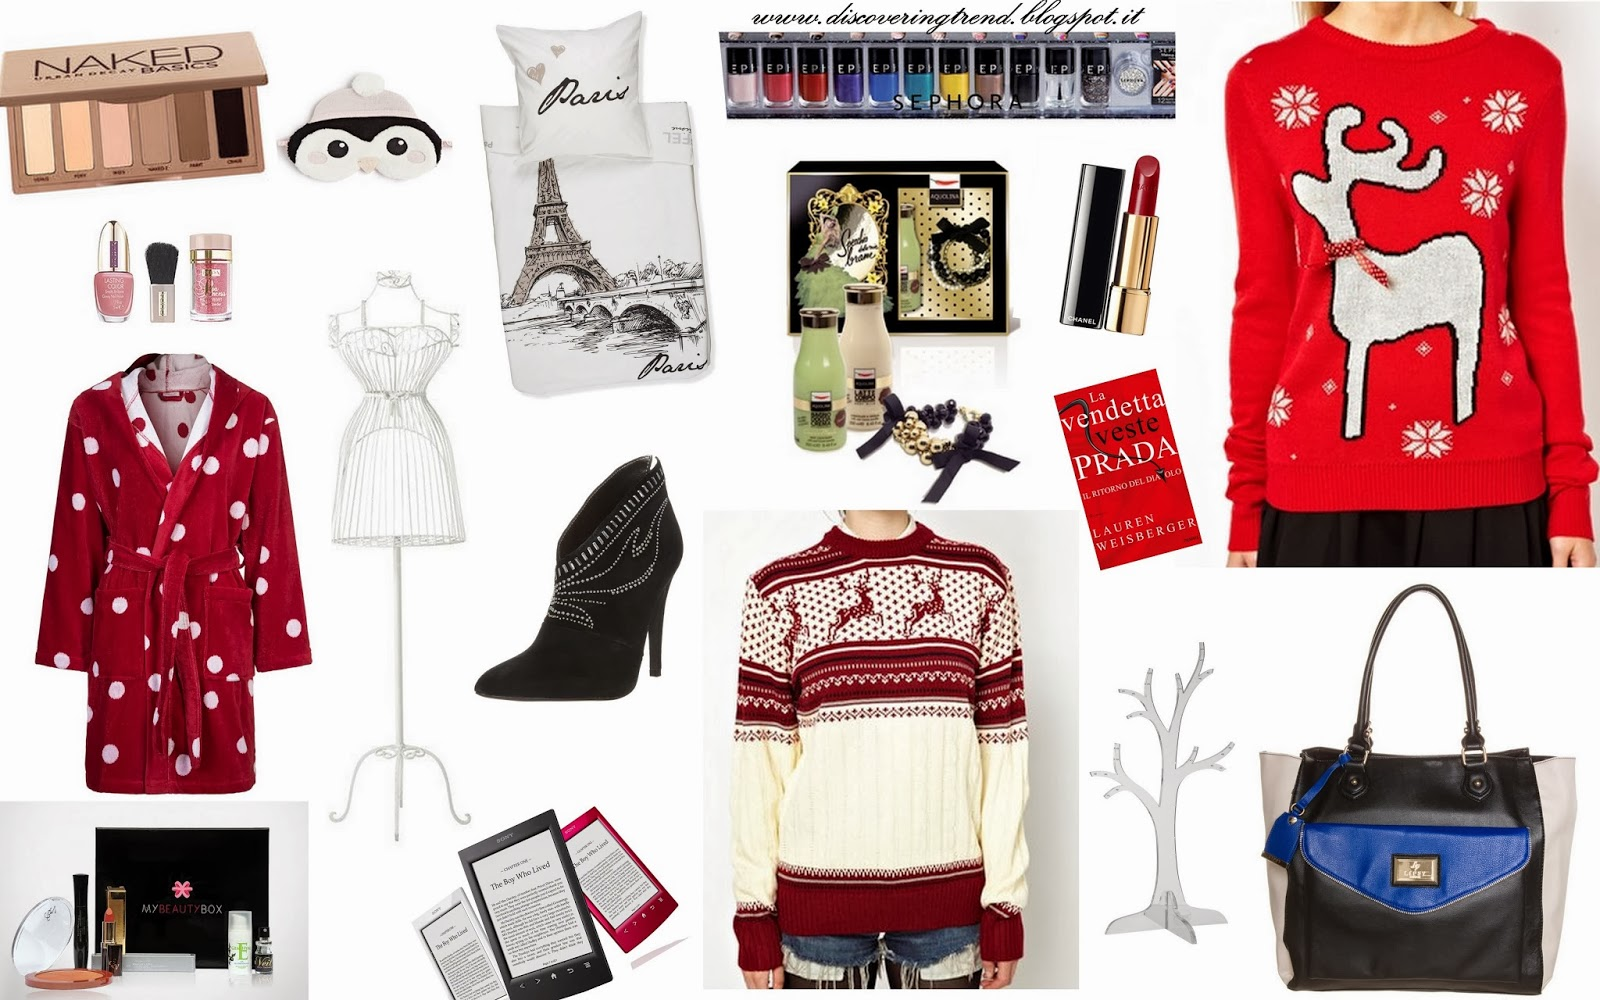 Per lei idee regalo donna discovering trend for Ideeregalo it